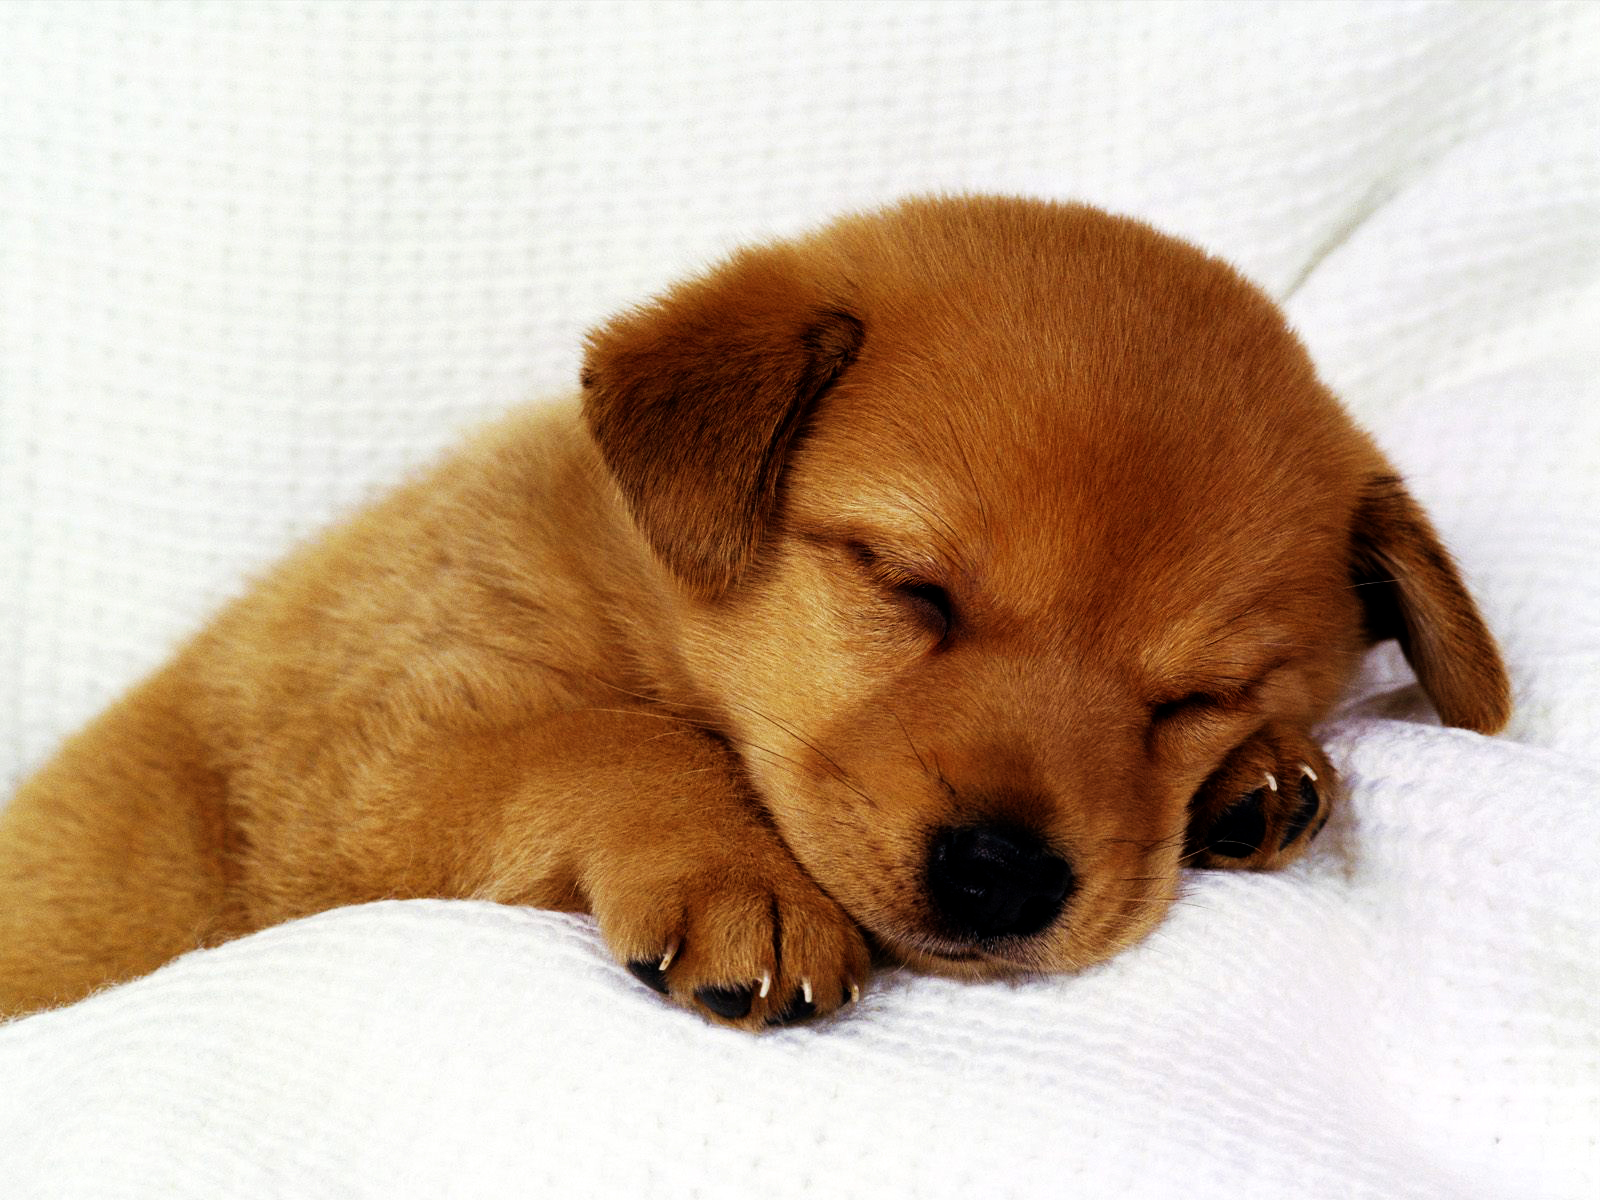 Cute Puppies Wallpapers Hd  Best High Definition Wallpapers